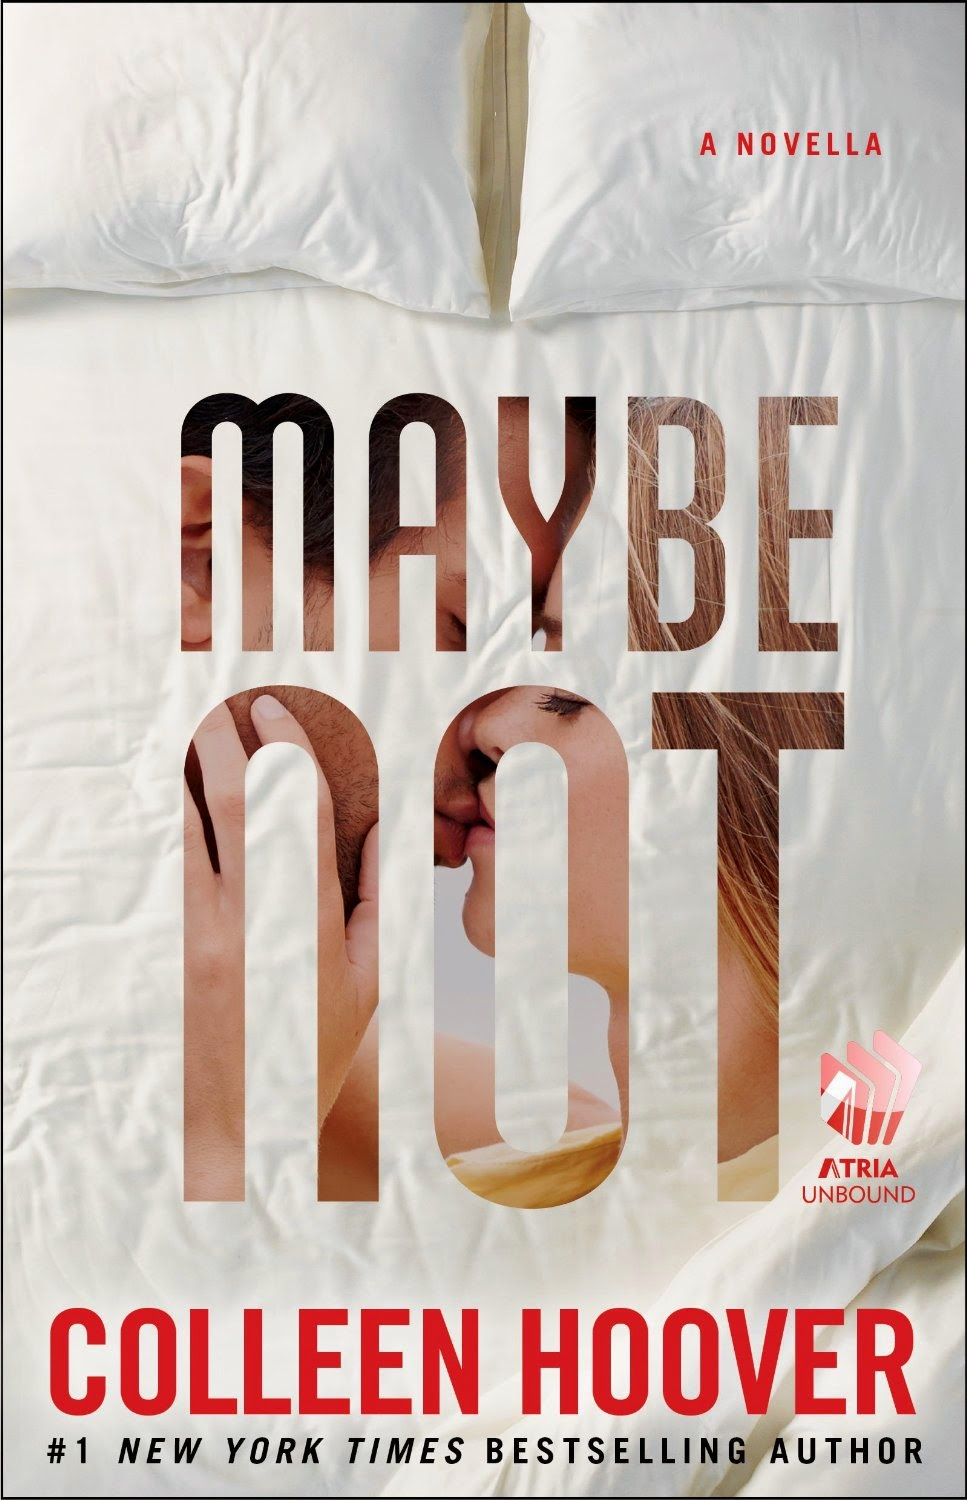 http://el-laberinto-del-libro.blogspot.com/2014/07/maybe-someday-colleen-hoover.html